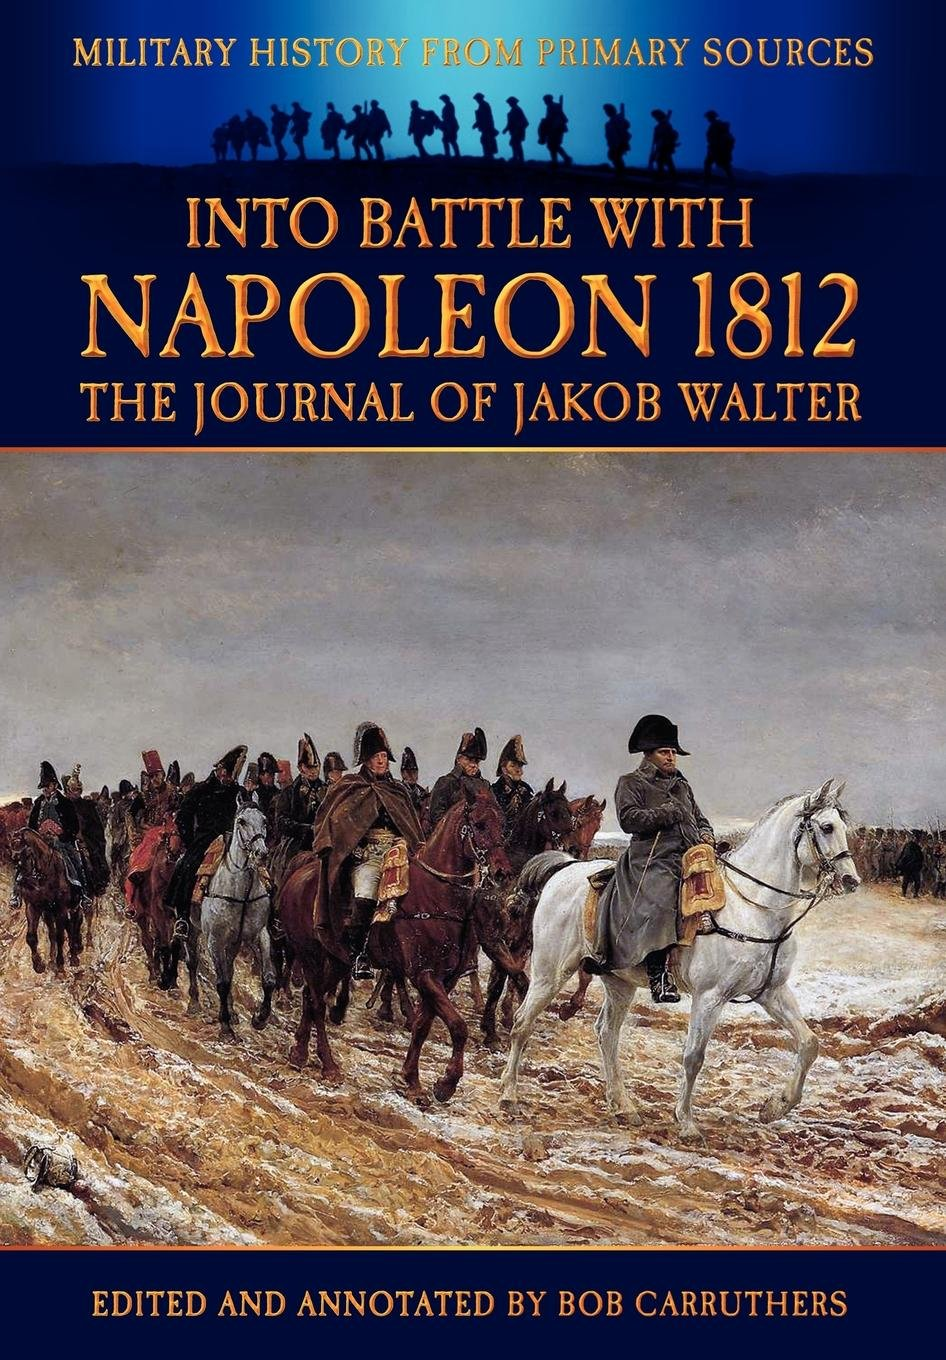 Into Battle with Napoleon 1812 - The Journal of Jakob Walter (Military History from Primary Sources) pdf epub